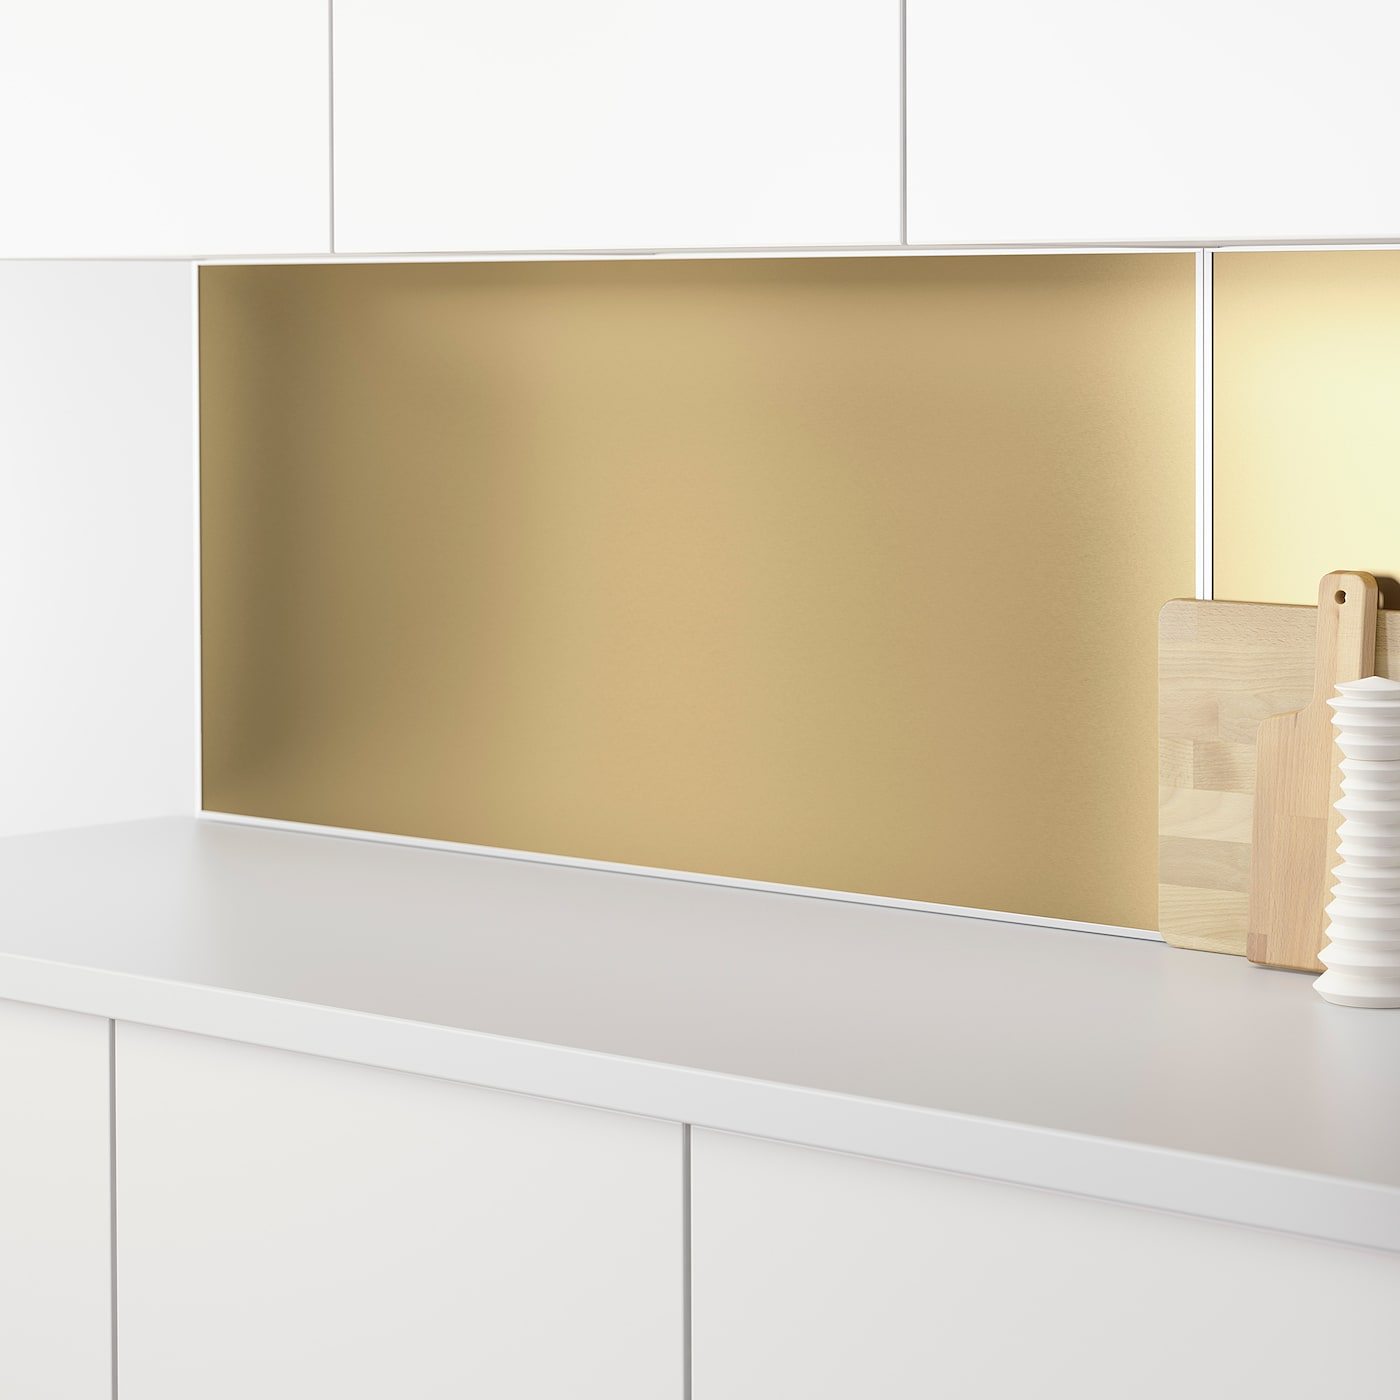 LYSEKIL Wall panel - double sided brass-colour/stainless steel colour  9.9x9 cm